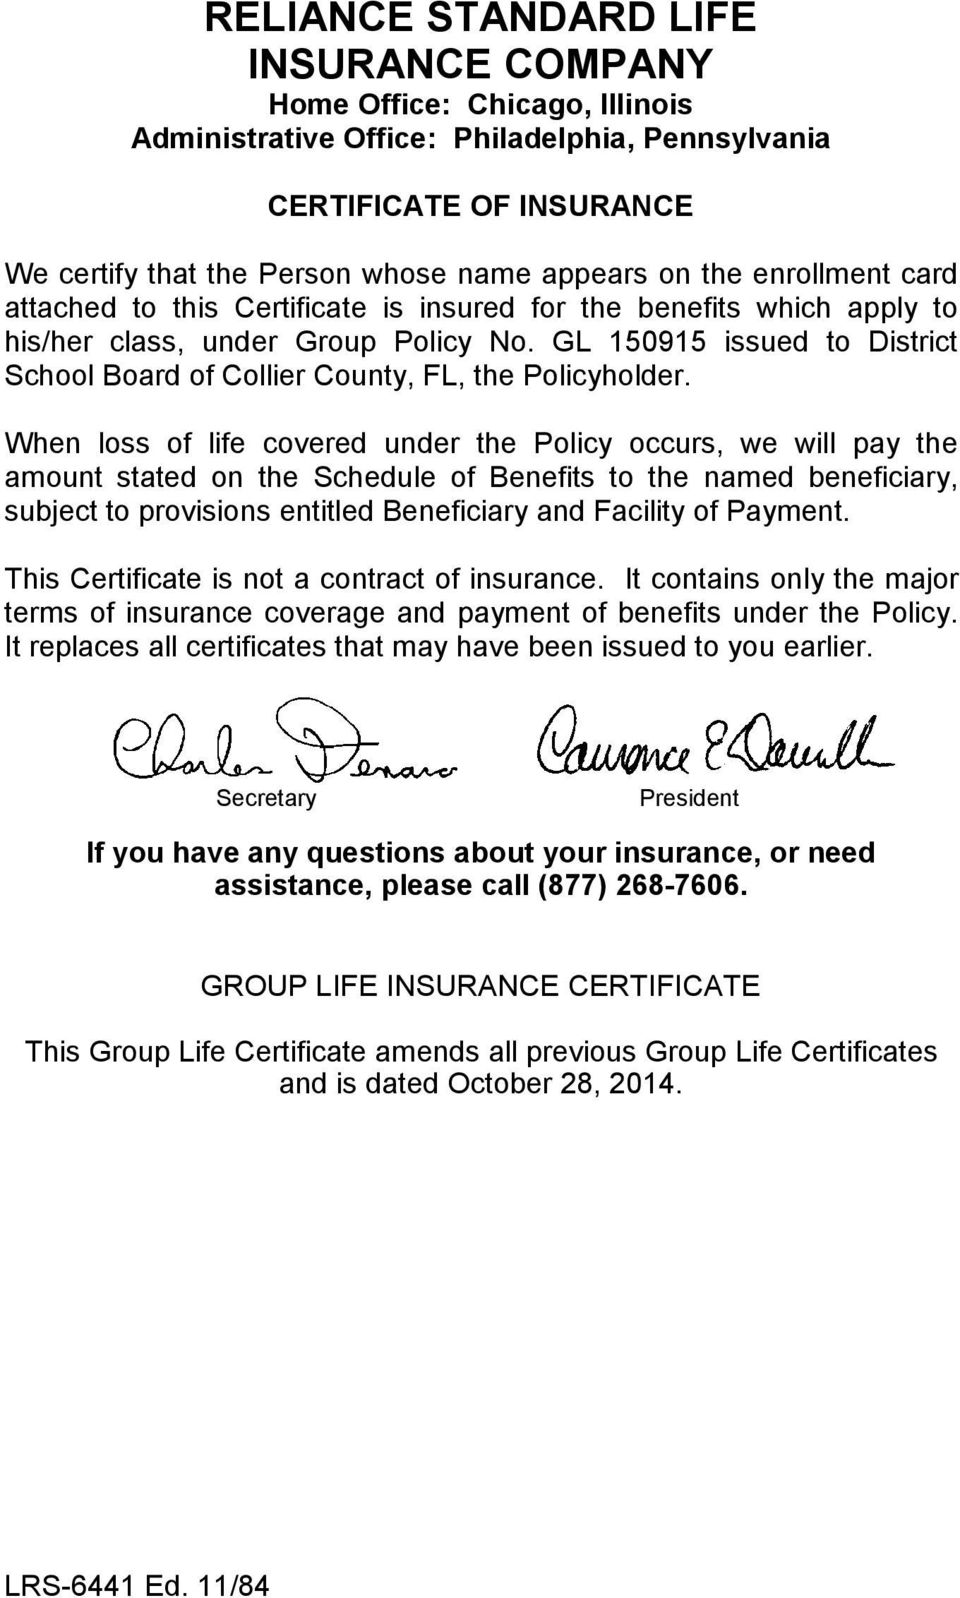 GL 150915 issued to District School Board of Collier County, FL, the Policyholder.